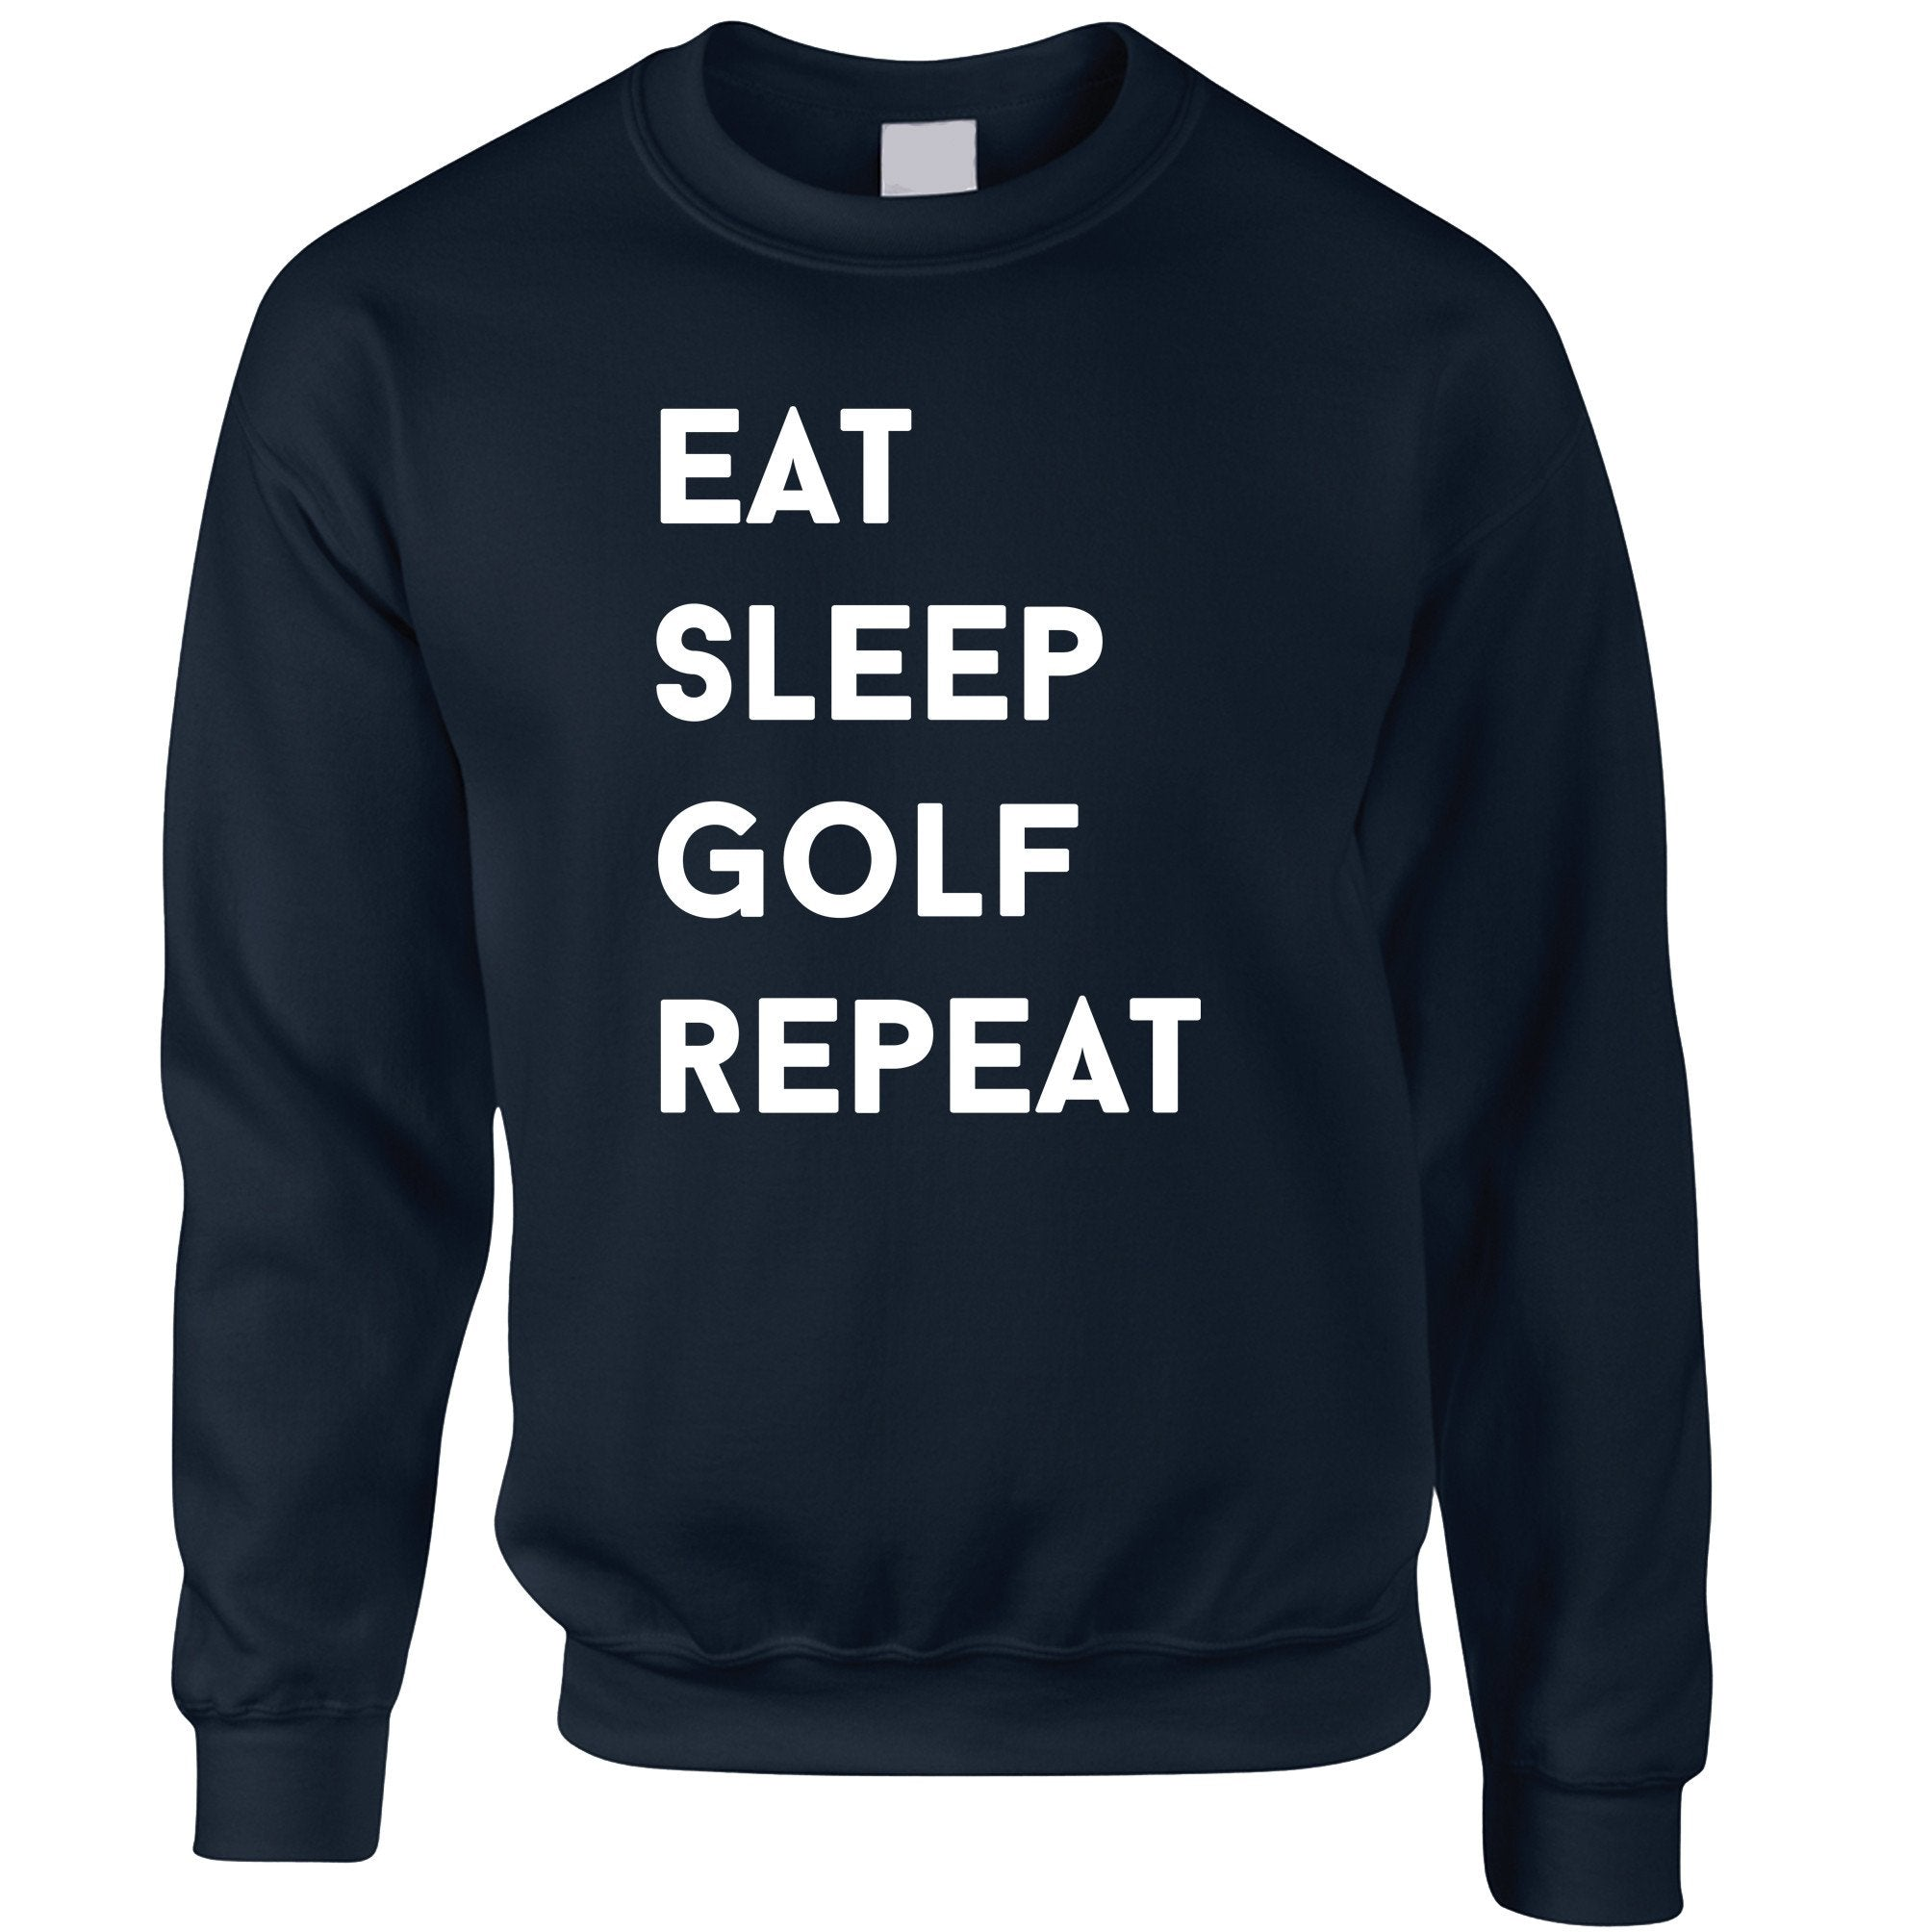 Sports Jumper Eat, Sleep, Golf, Repeat Slogan Sweatshirt Sweater